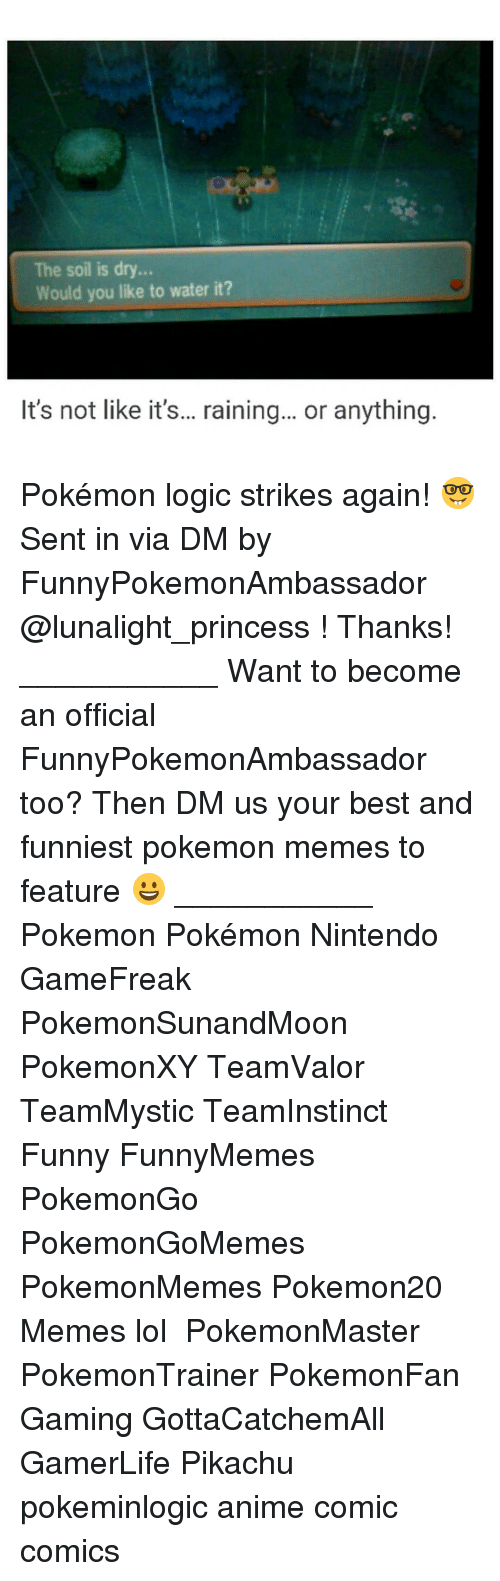 Memes, Pikachu, and 🤖: The soil is dry  Would you like to water it?  It's not like it's... raining... or anything Pokémon logic strikes again! 🤓 Sent in via DM by FunnyPokemonAmbassador @lunalight_princess ! Thanks! ___________ Want to become an official FunnyPokemonAmbassador too? Then DM us your best and funniest pokemon memes to feature 😀 ___________ Pokemon Pokémon Nintendo GameFreak PokemonSunandMoon PokemonXY TeamValor TeamMystic TeamInstinct Funny FunnyMemes PokemonGo PokemonGoMemes PokemonMemes Pokemon20 Memes lol ポケットモンスター PokemonMaster PokemonTrainer PokemonFan Gaming GottaCatchemAll GamerLife Pikachu pokeminlogic anime comic comics